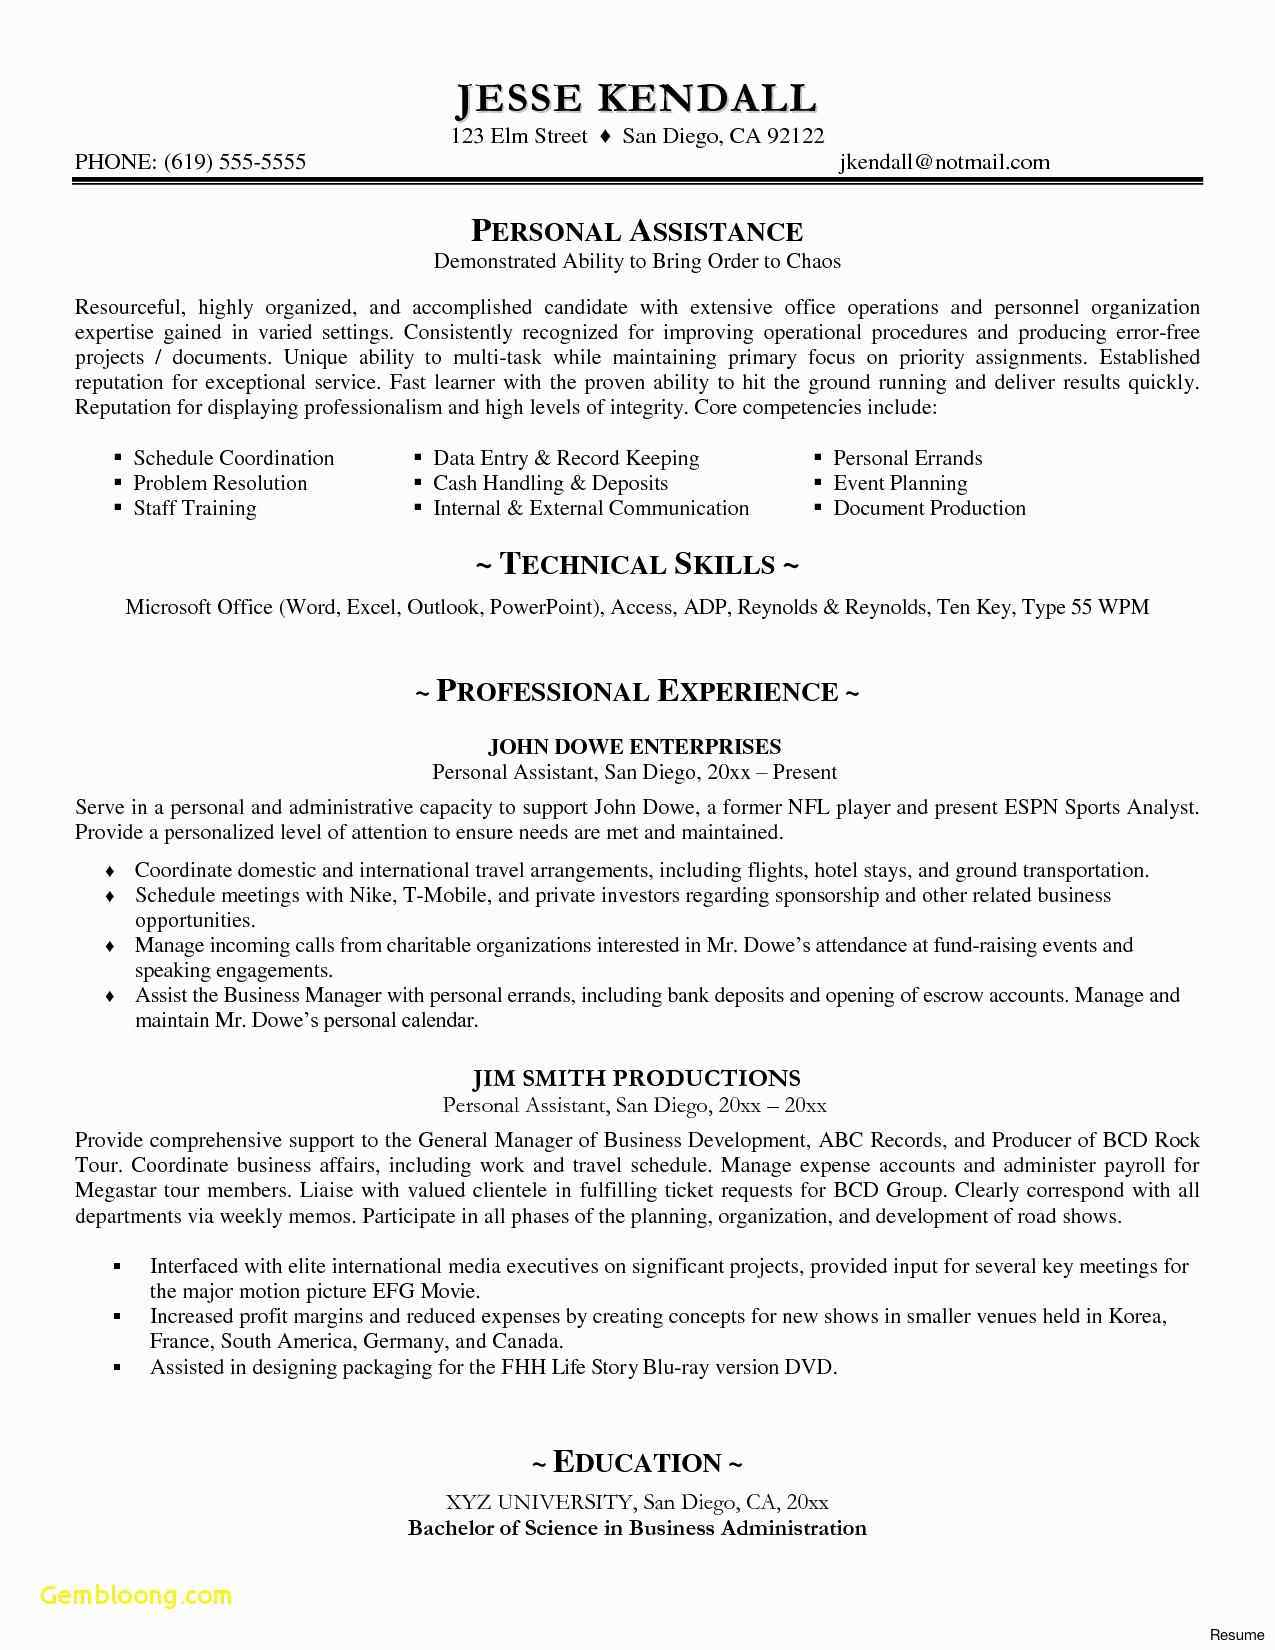 Resume for Internal Promotion - How to Create A Resume Word without A Template – Resume Example